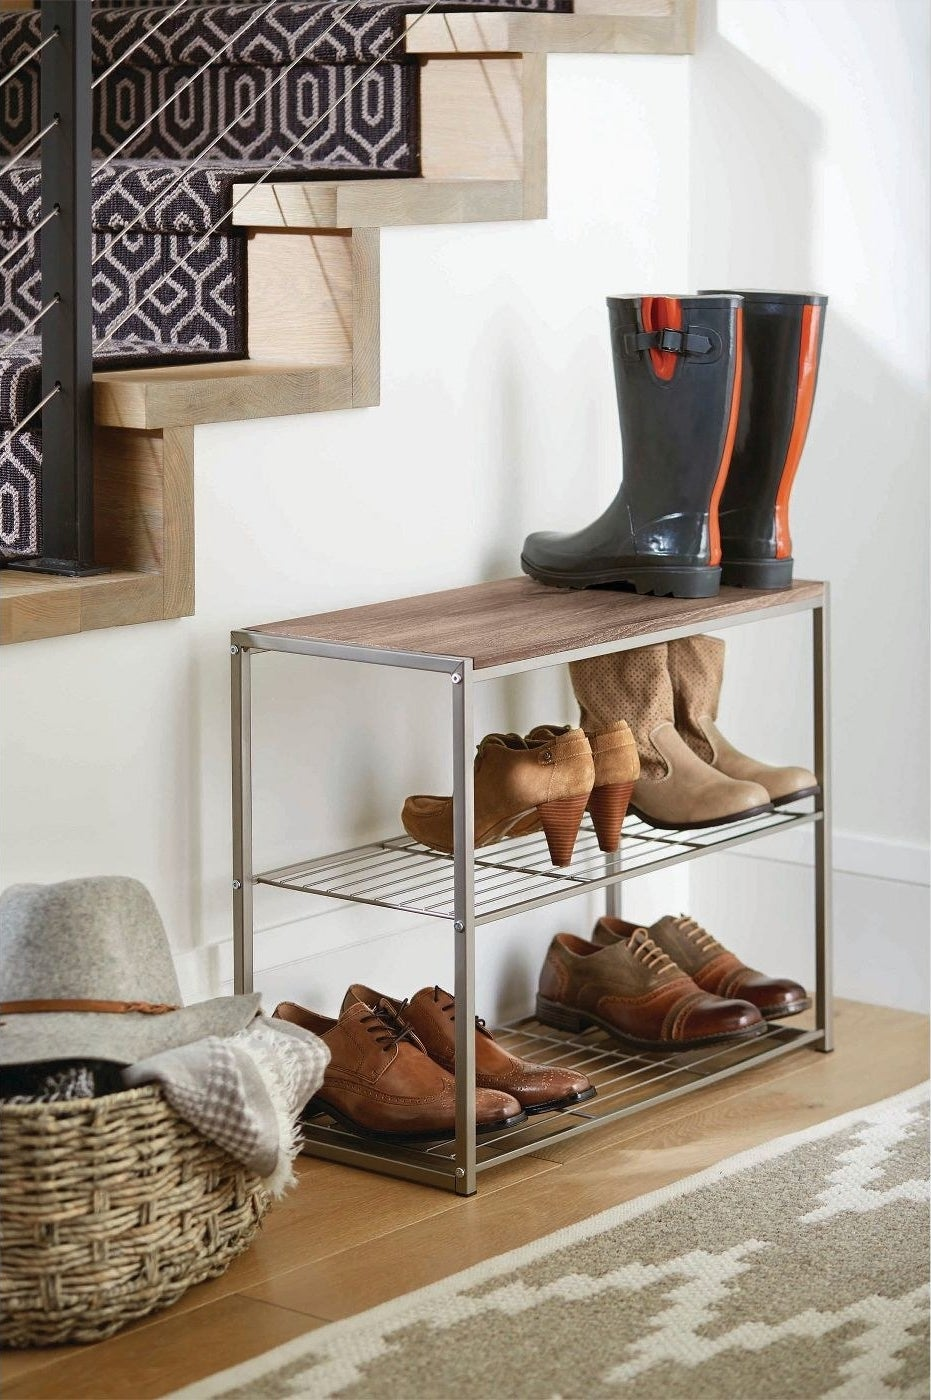 a three-tiered show rack with a wooden tabletop and grey metal bar sides